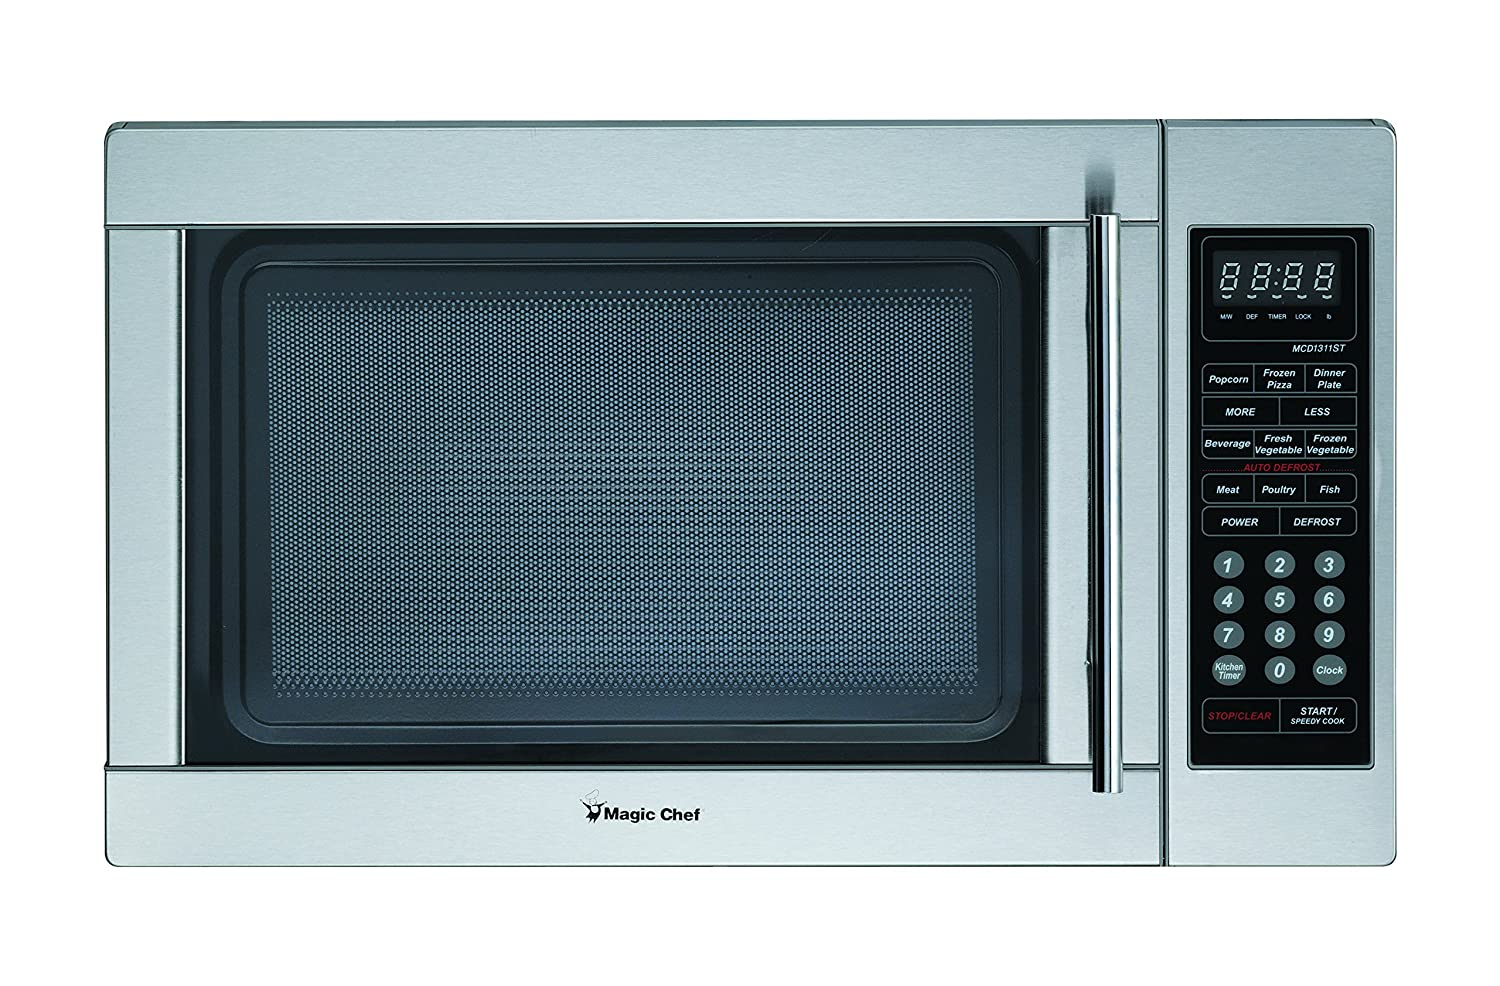 Magic Chef MCPMCD1310ST MCD1310ST 1.3 cu.ft. Microwave Stainless Steel